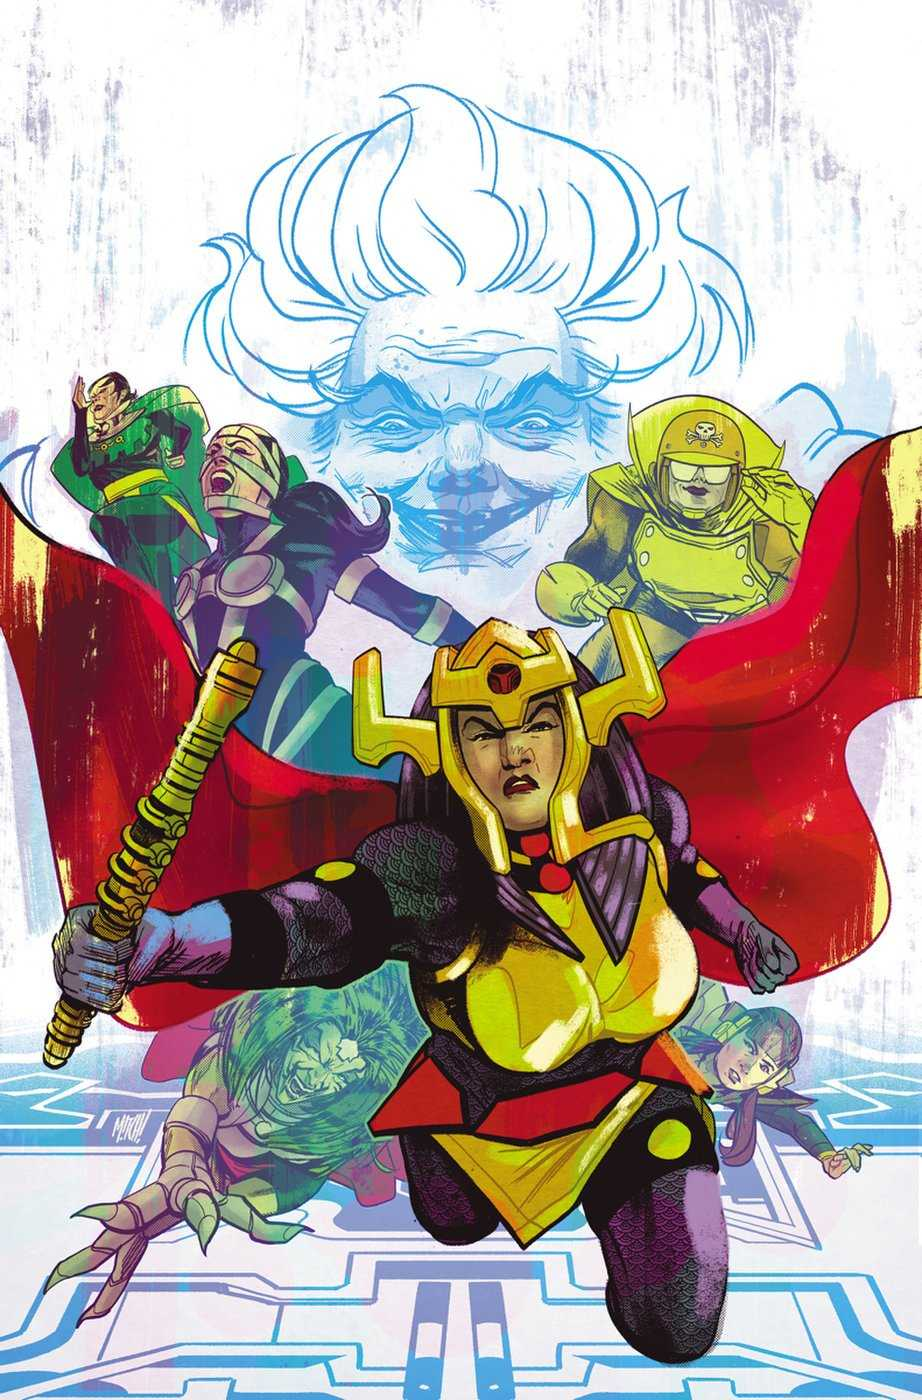 4 Big Barda stories to Free your mind